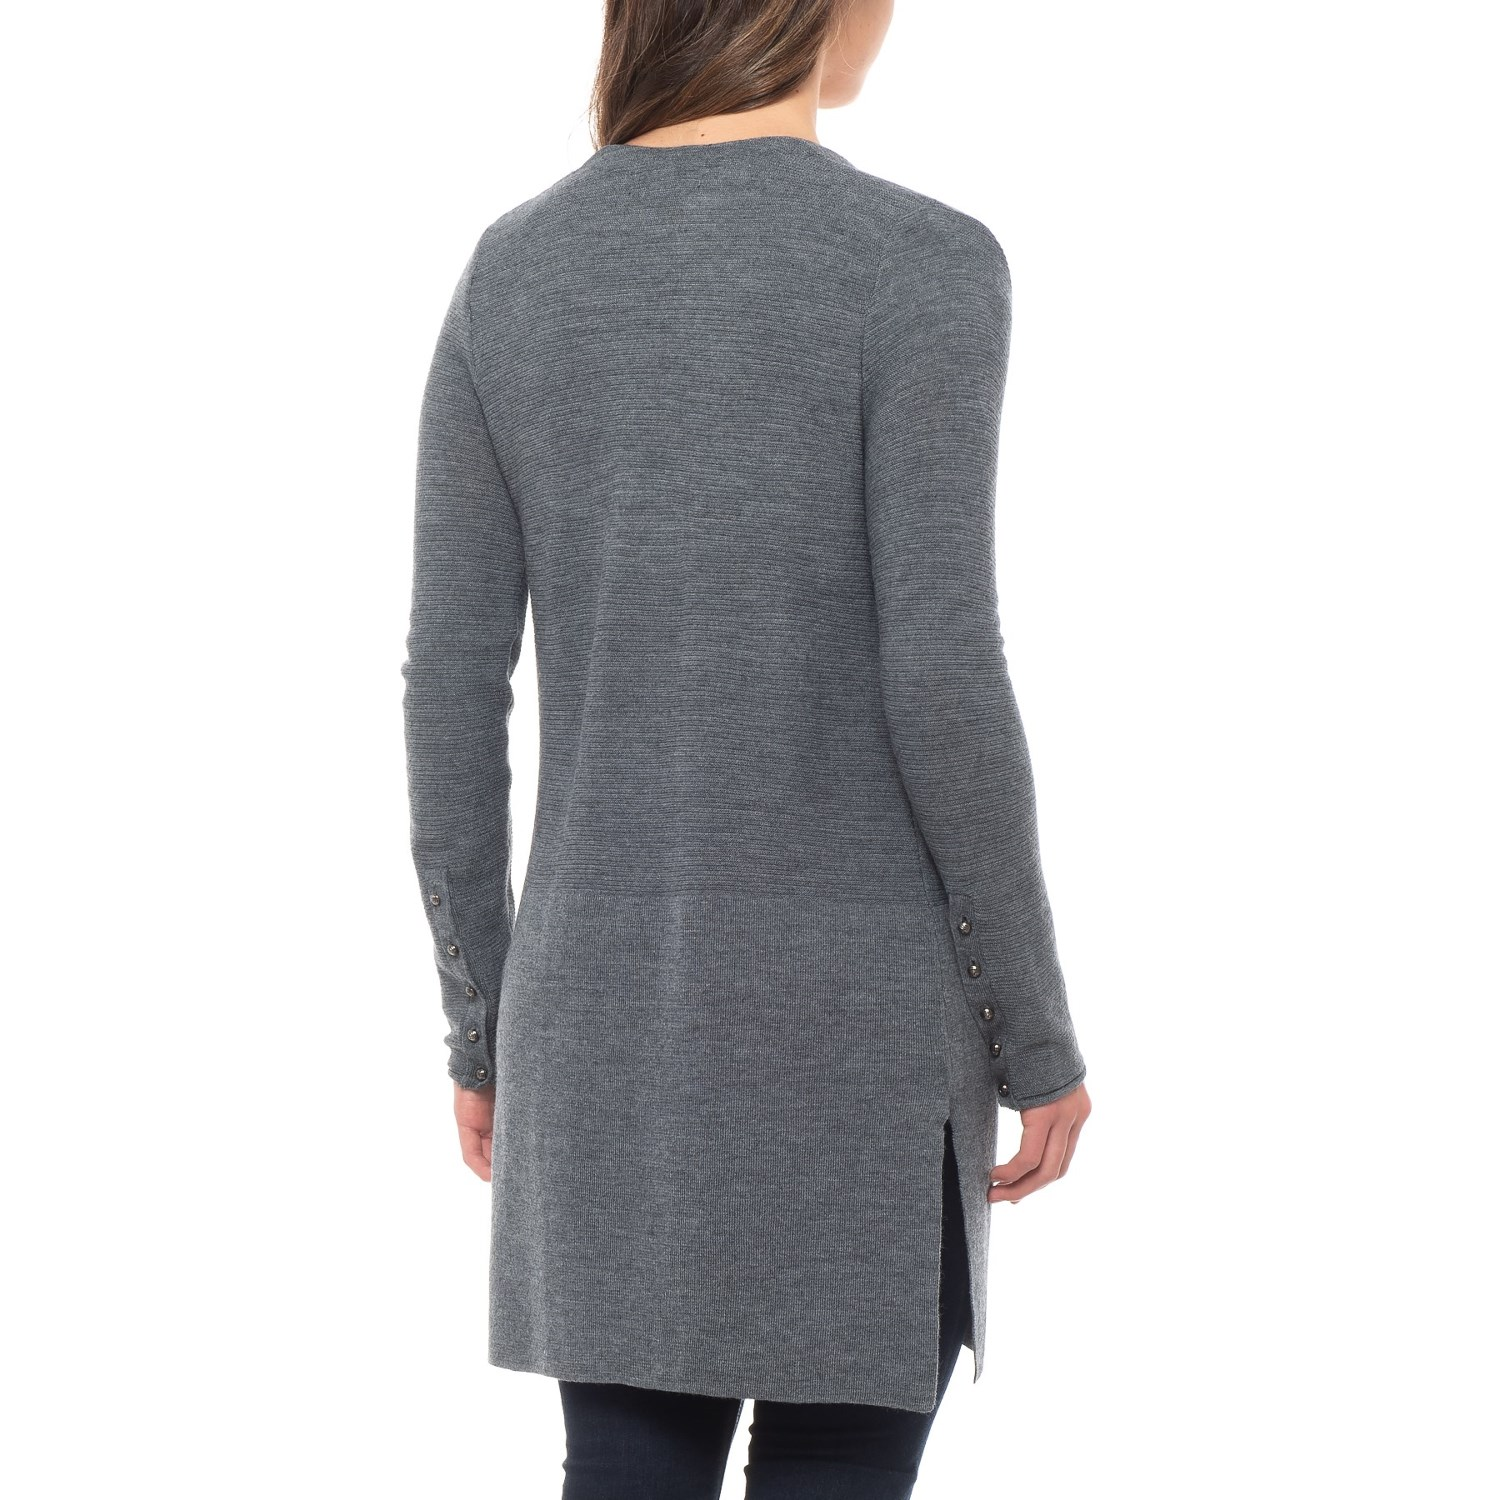 af1fc191e7 Tahari Textured Cardigan Sweater - Merino Wool (For Women)